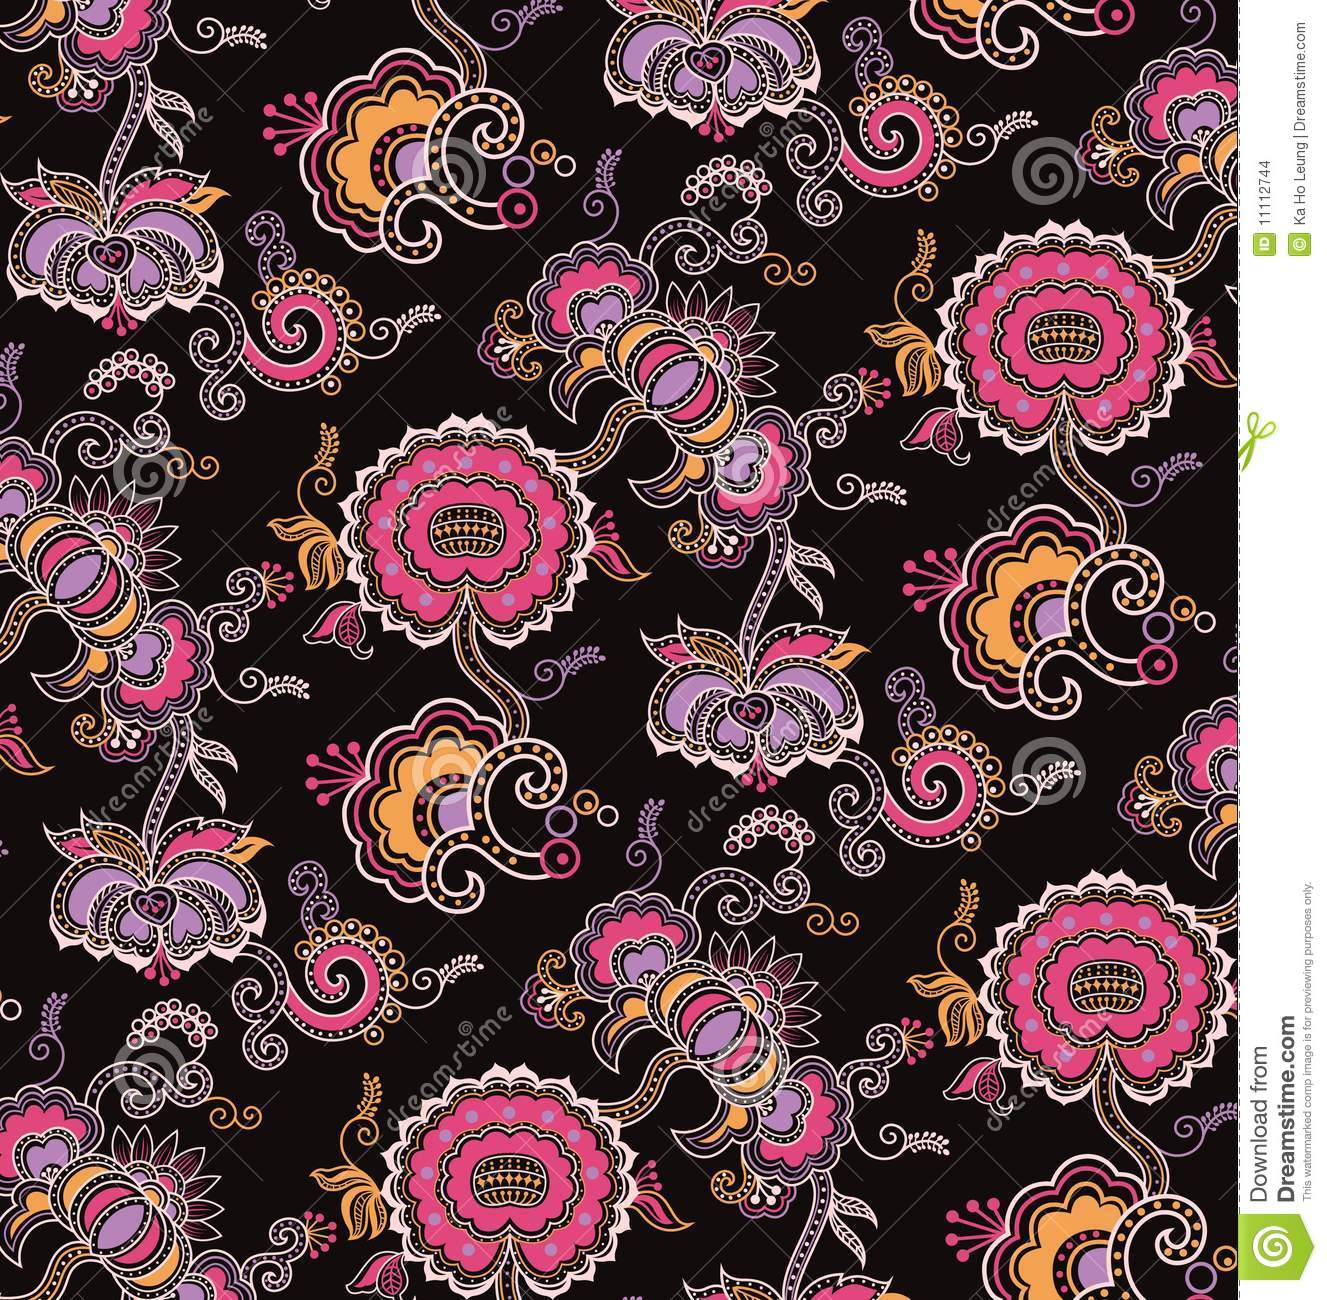 Displaying 20> Images For - Asian Floral Patterns...